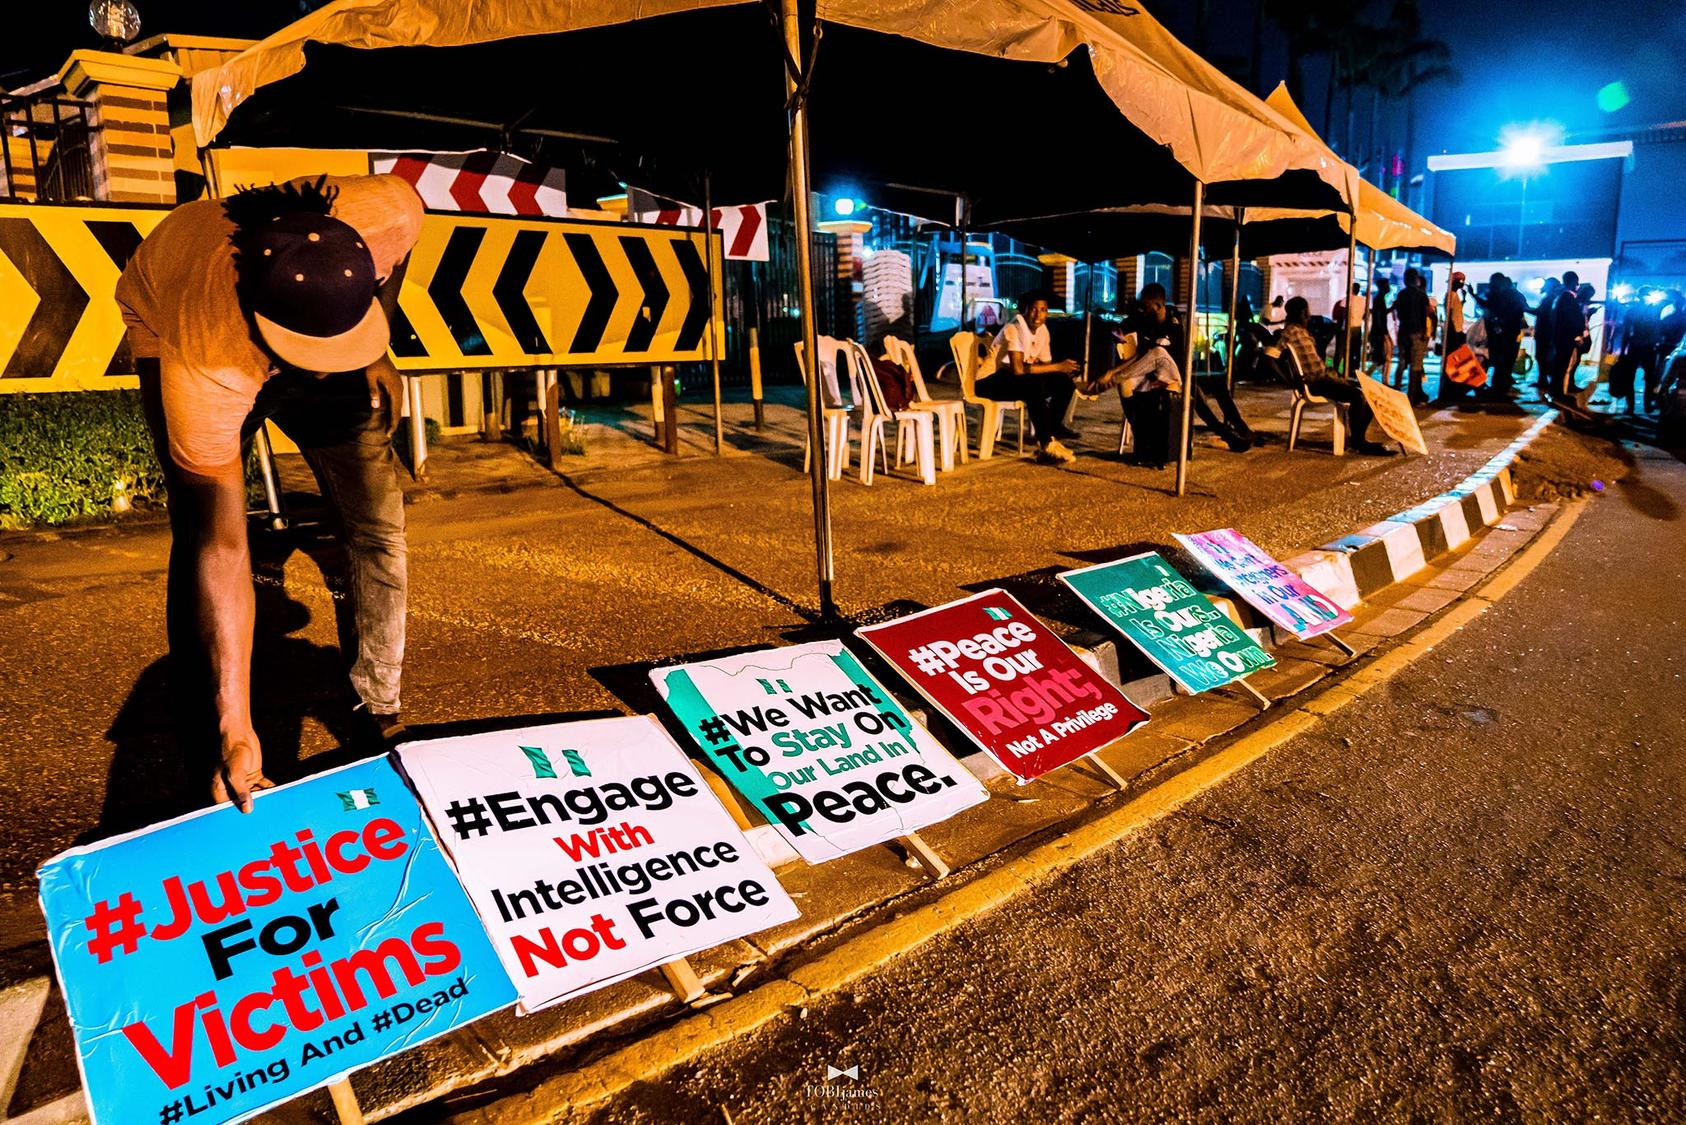 A protester spreads various placards that convey messages against the unlawful killings carried out by SARS, October 8, 2020. (TobiJamesCandids/CC License 4.0)